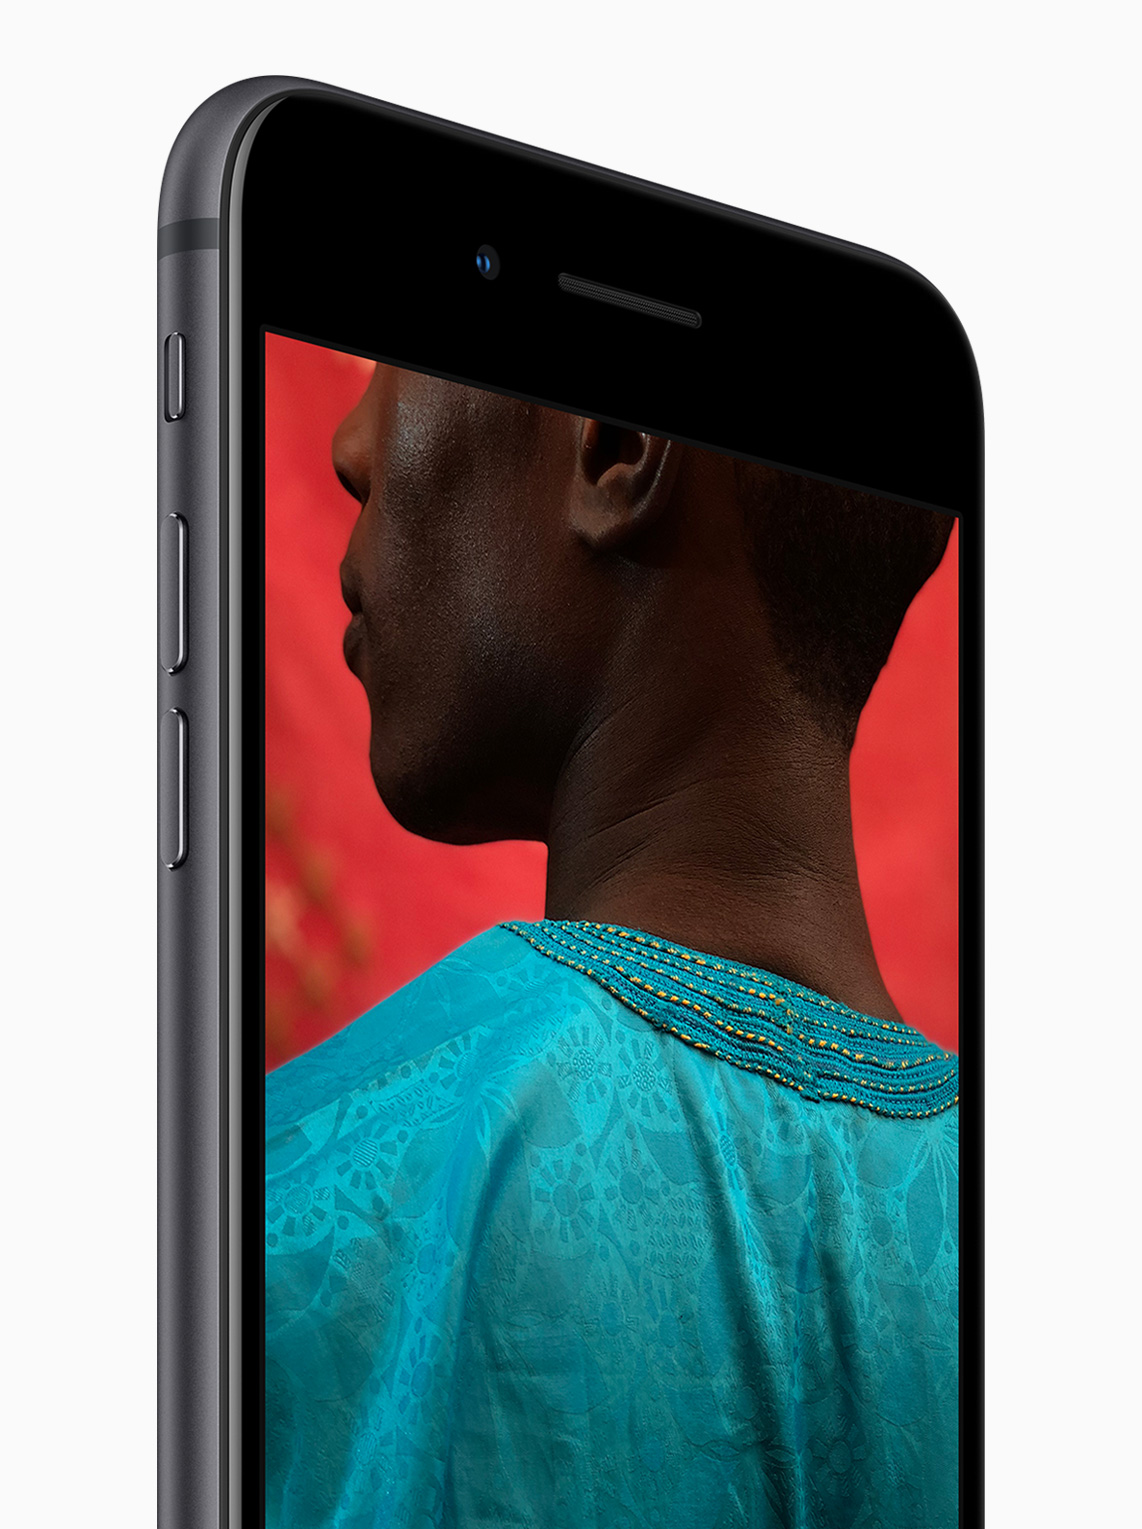 iPhone8Plus_and_iPhone8_new_camera.jpg